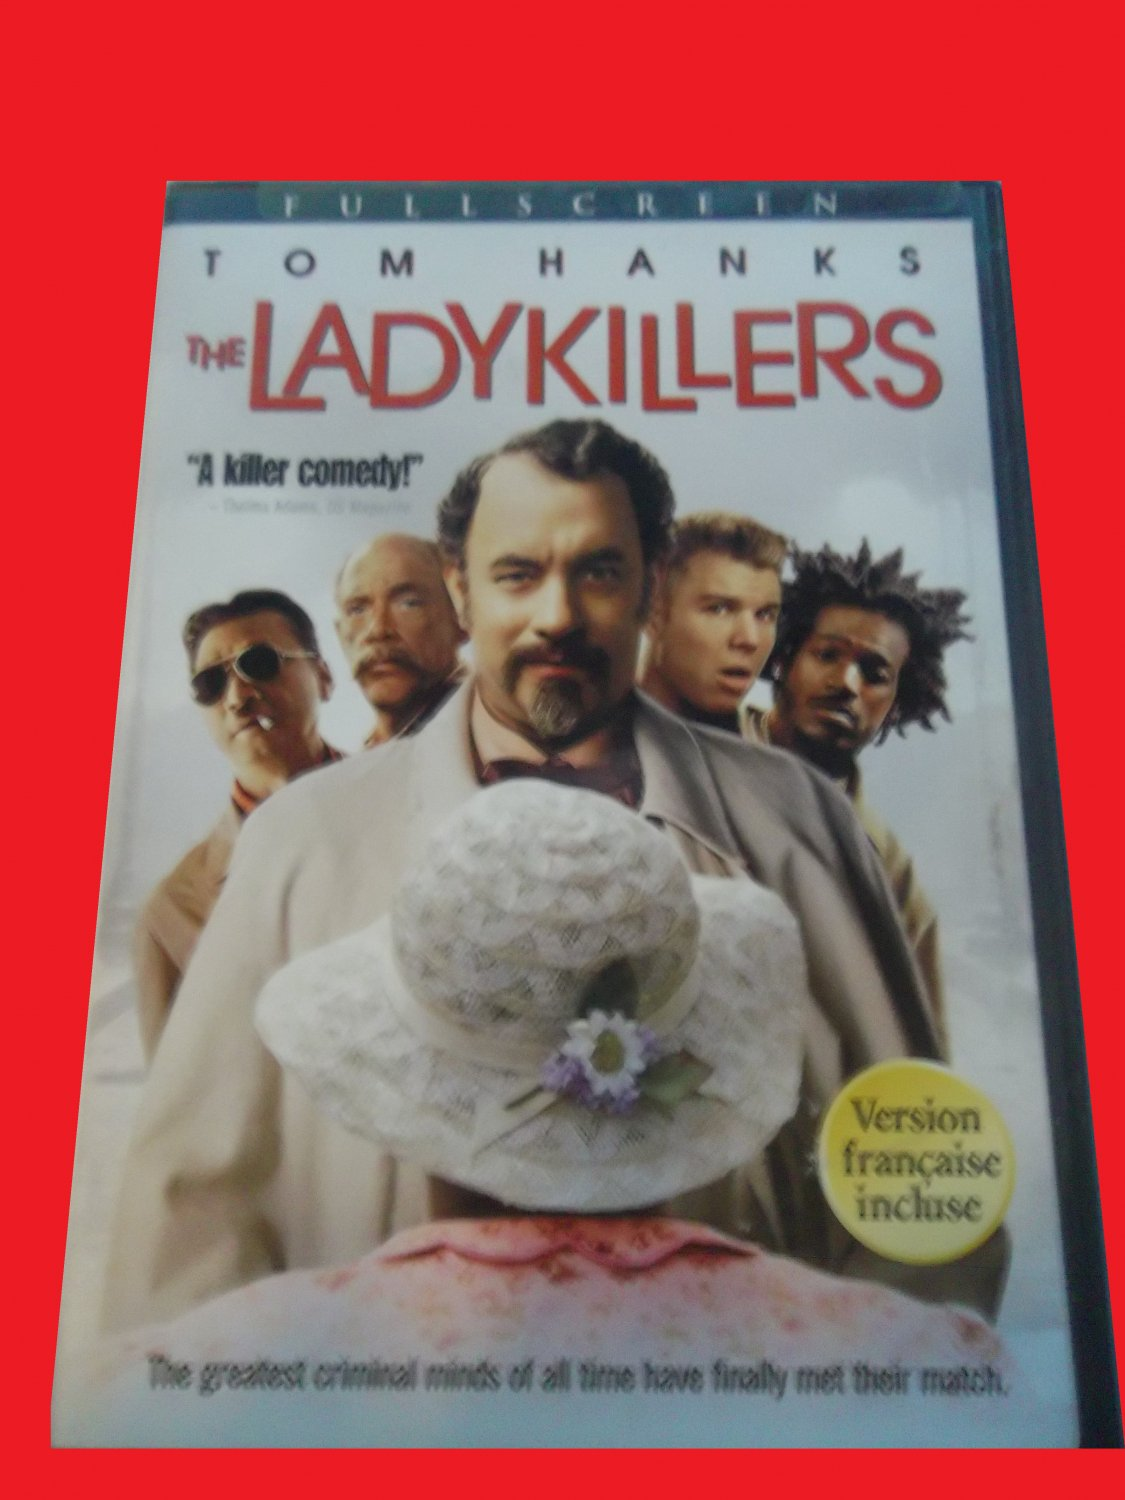 THE LADYKILLERS (FREE DVD & FAST SHIPPING) TOM HANKS (COMEDY/THRILLER/SUSPENSE)